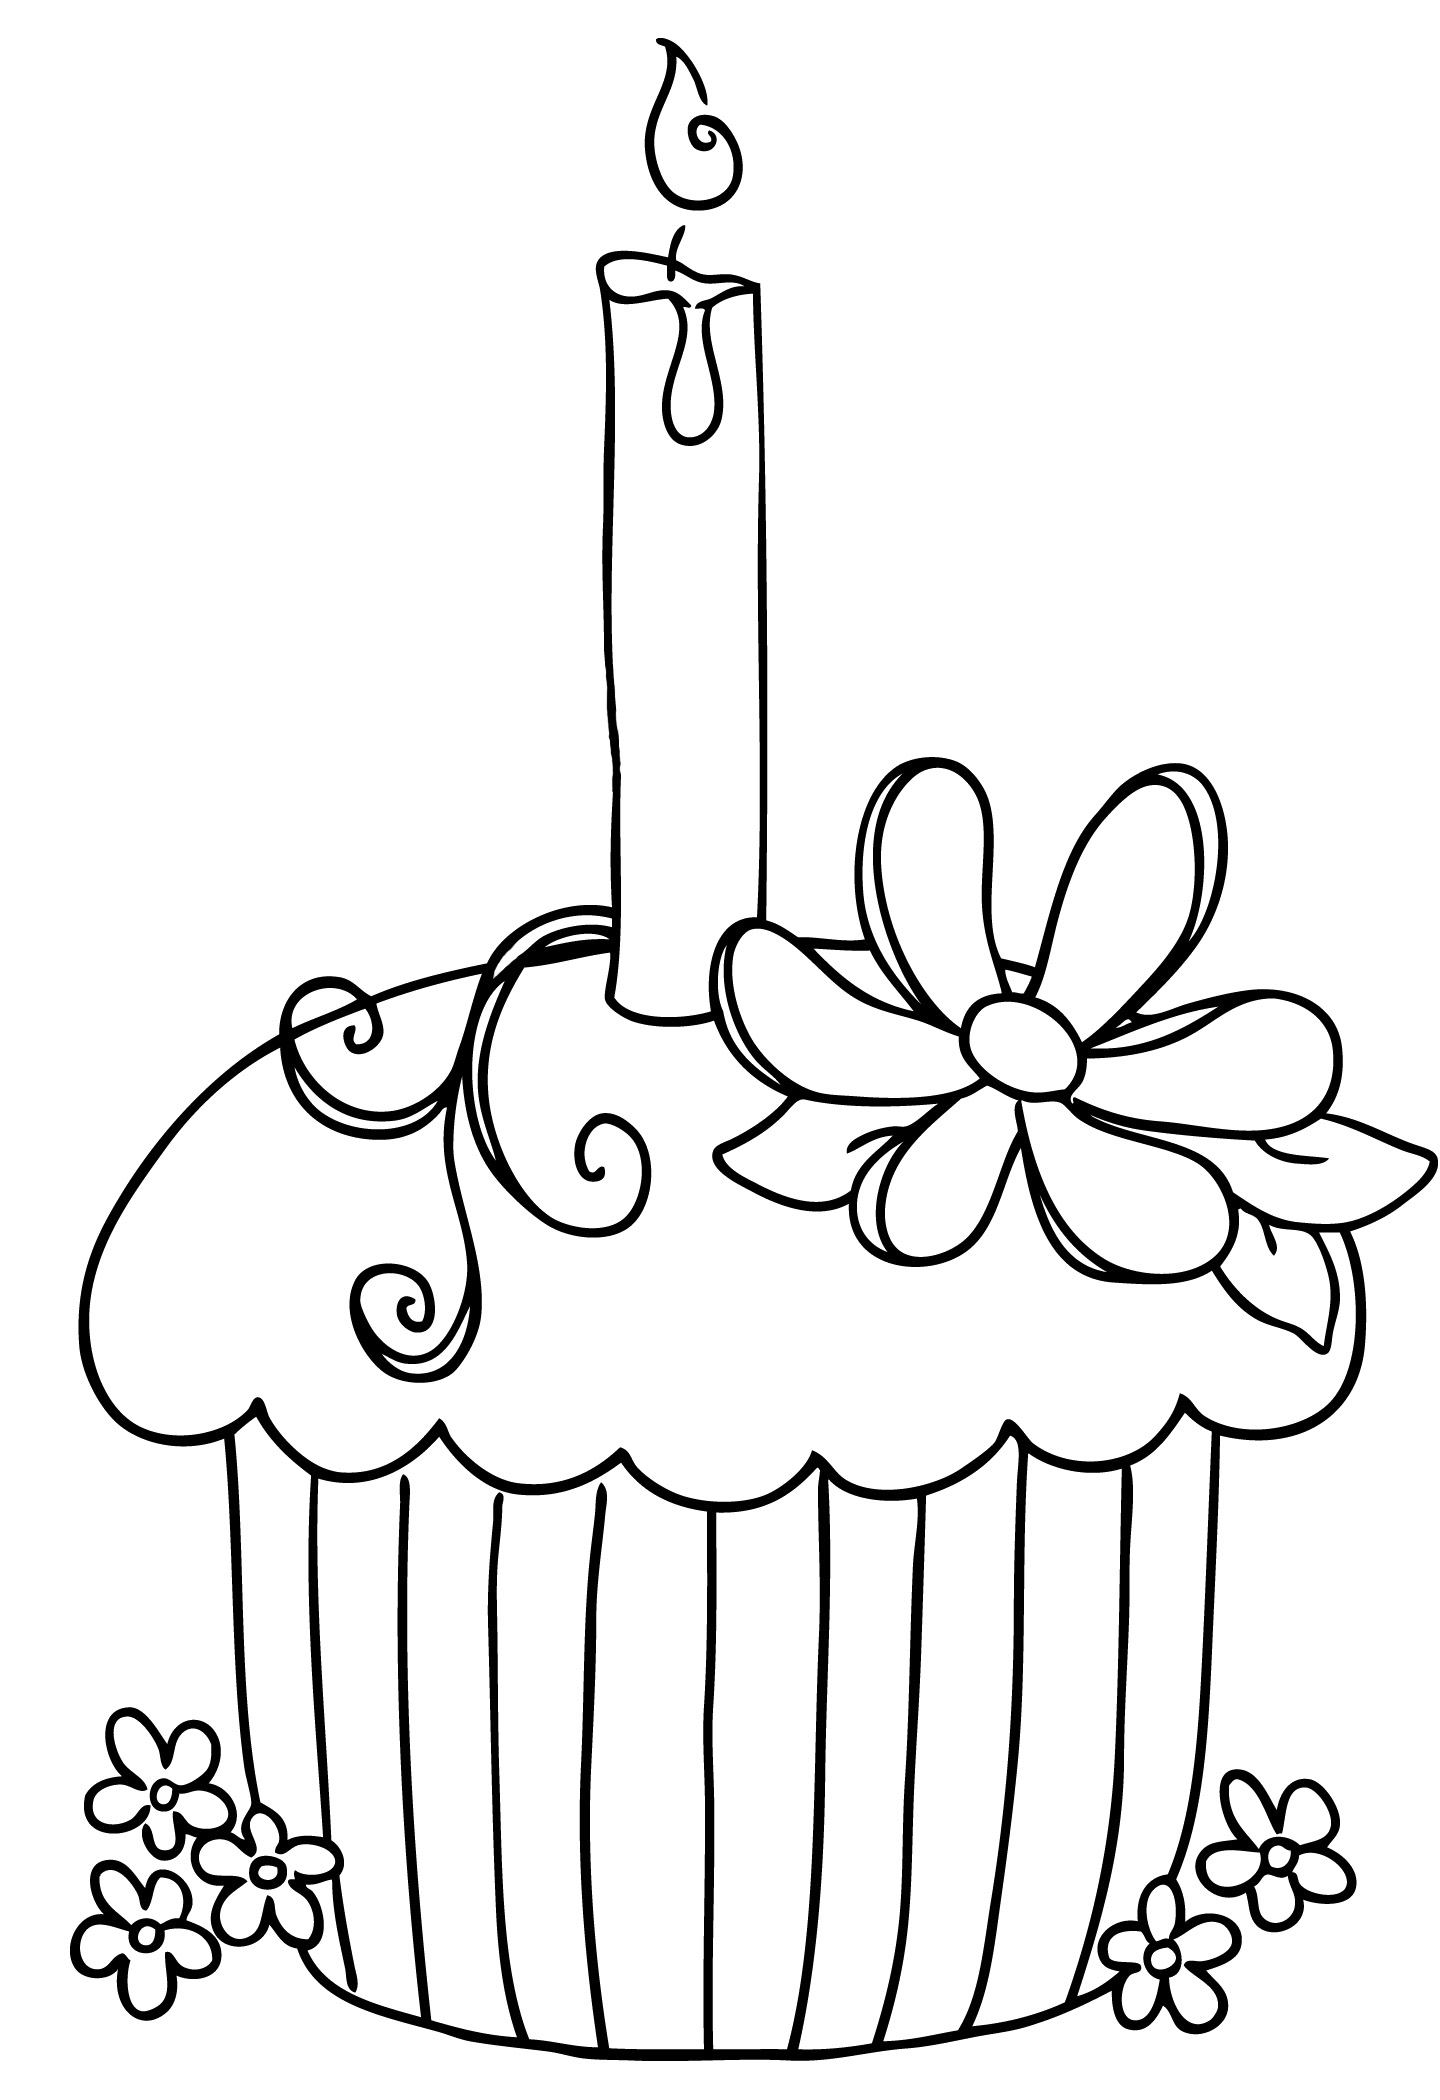 Free Birthday Cake Clip Art Black And White Download Free